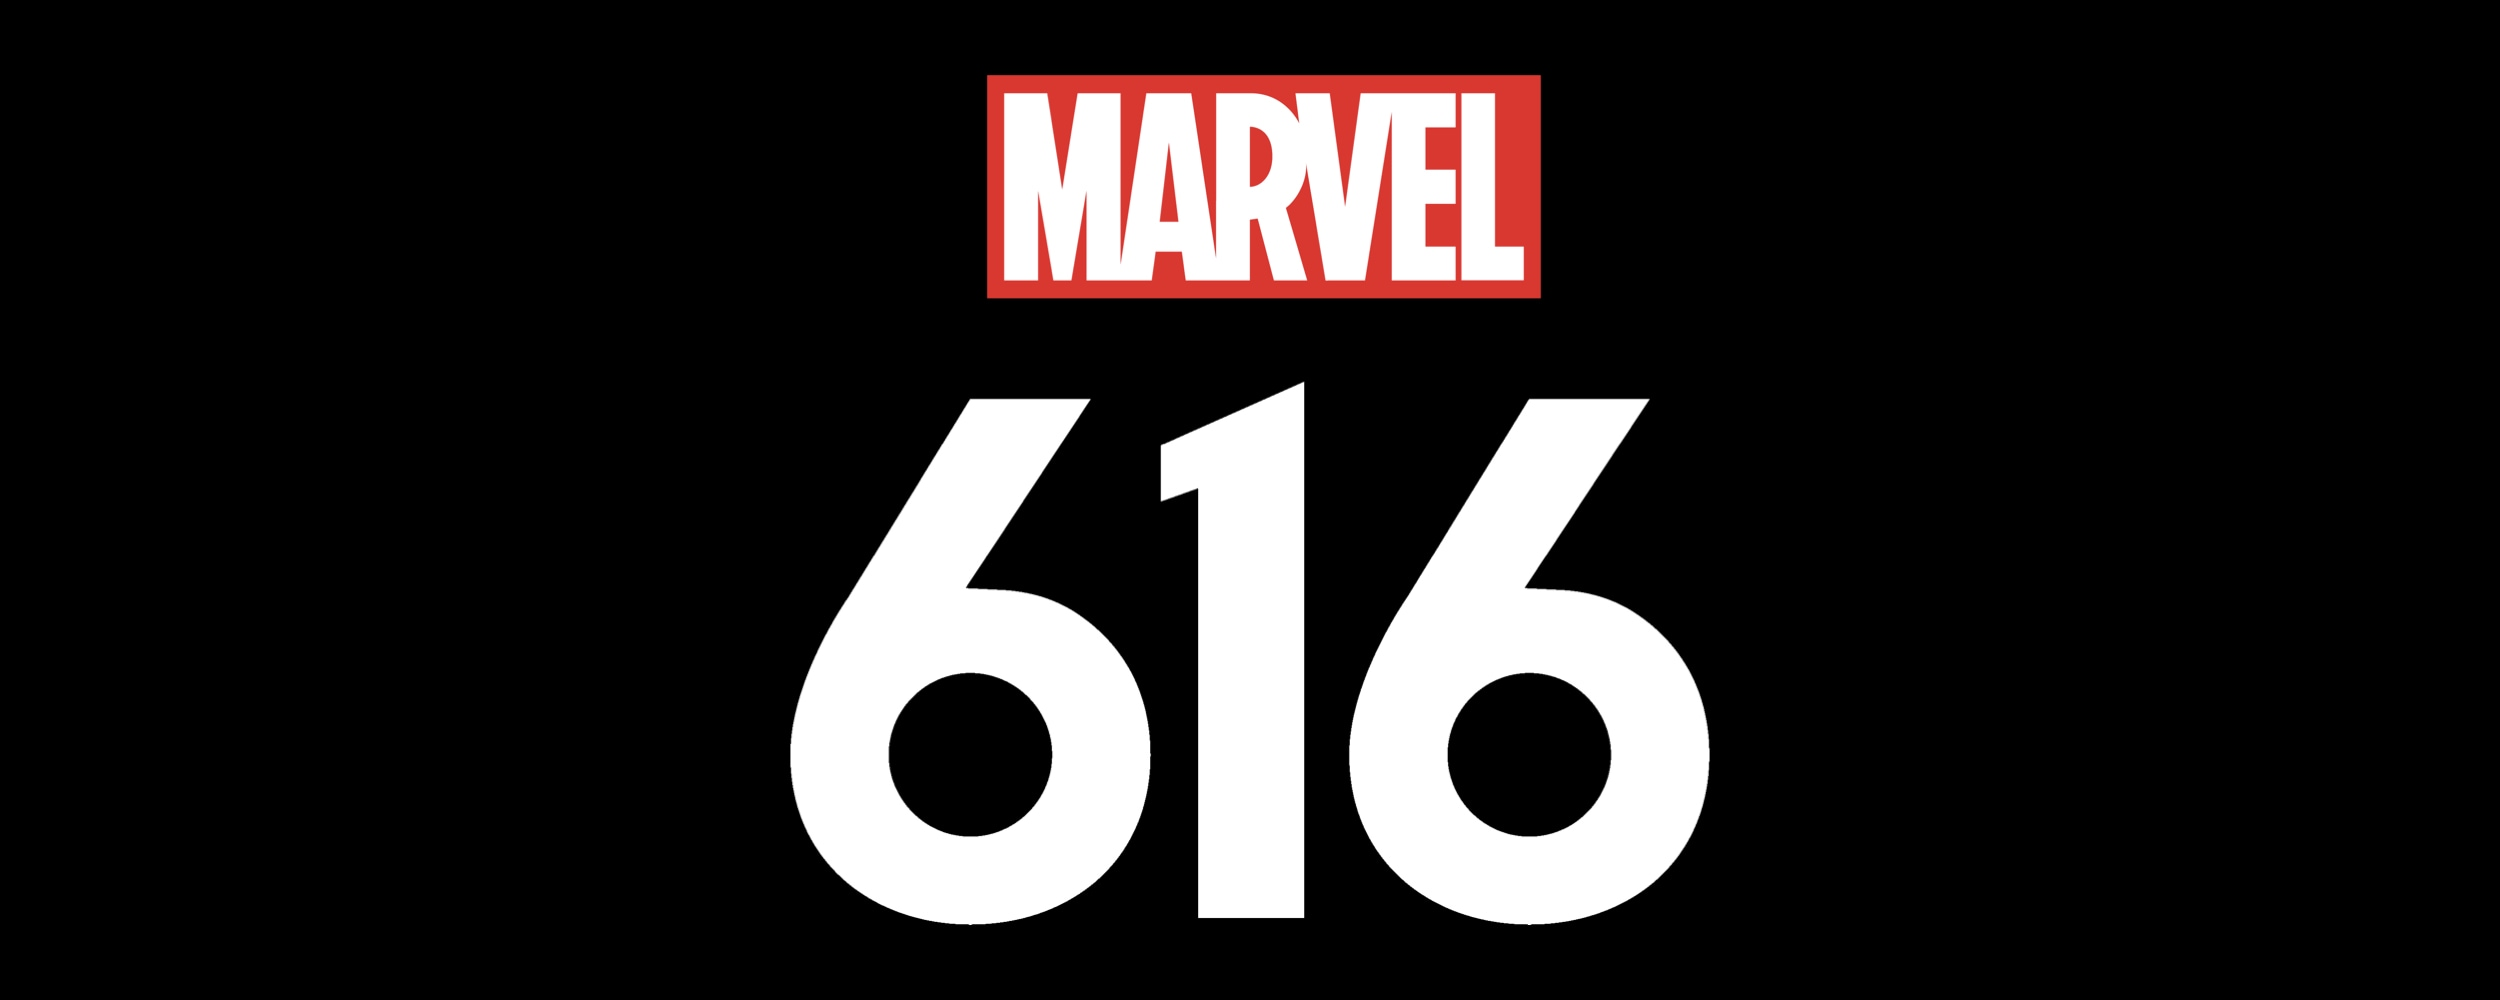 Marvel's 616 Media Kit